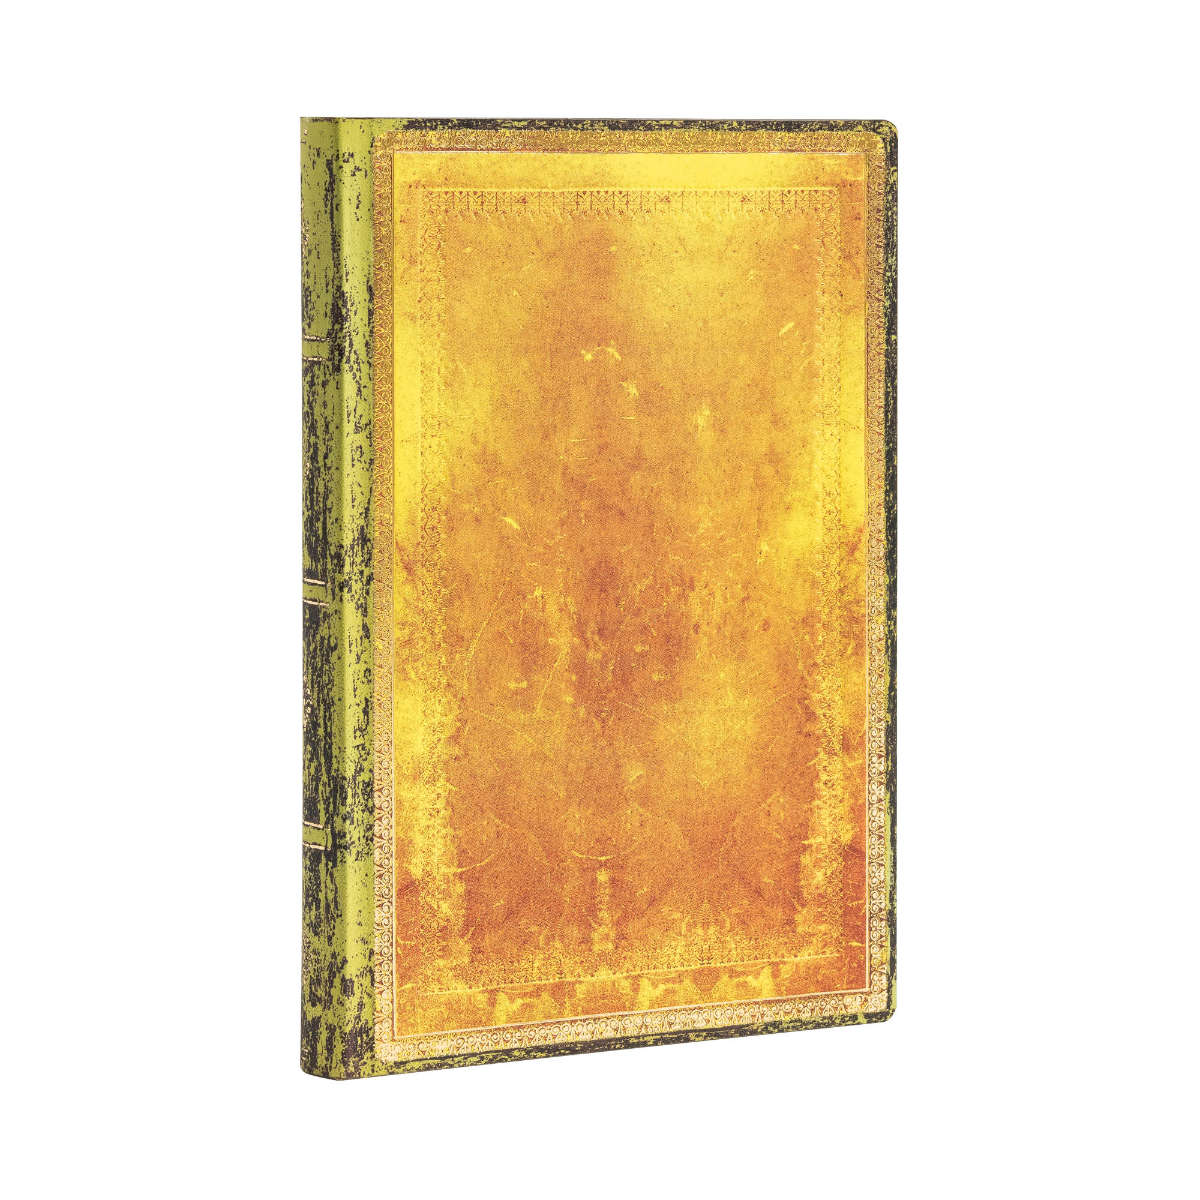 Paperblanks Flexis Old Leather Ochre Mini 3.75 x 5.5 Inch